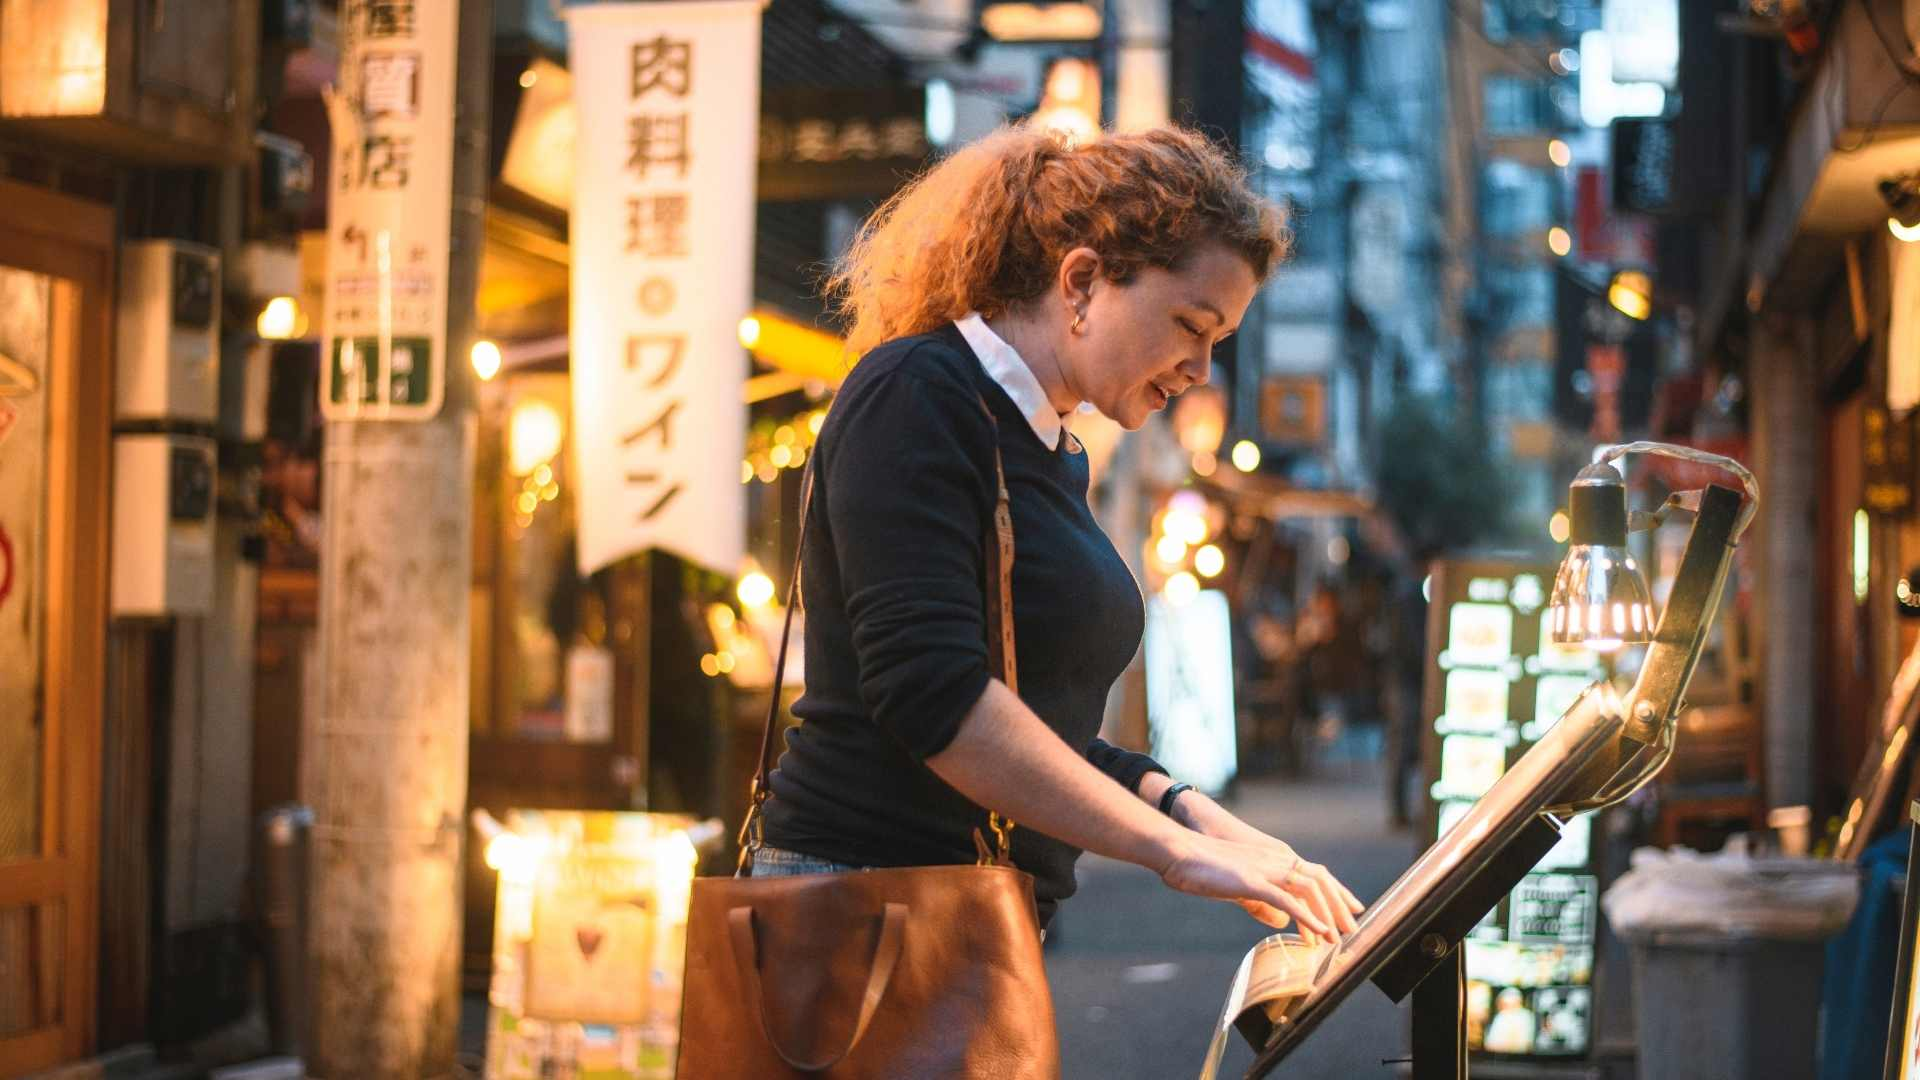 Best Drunk Food for your night out in Japan